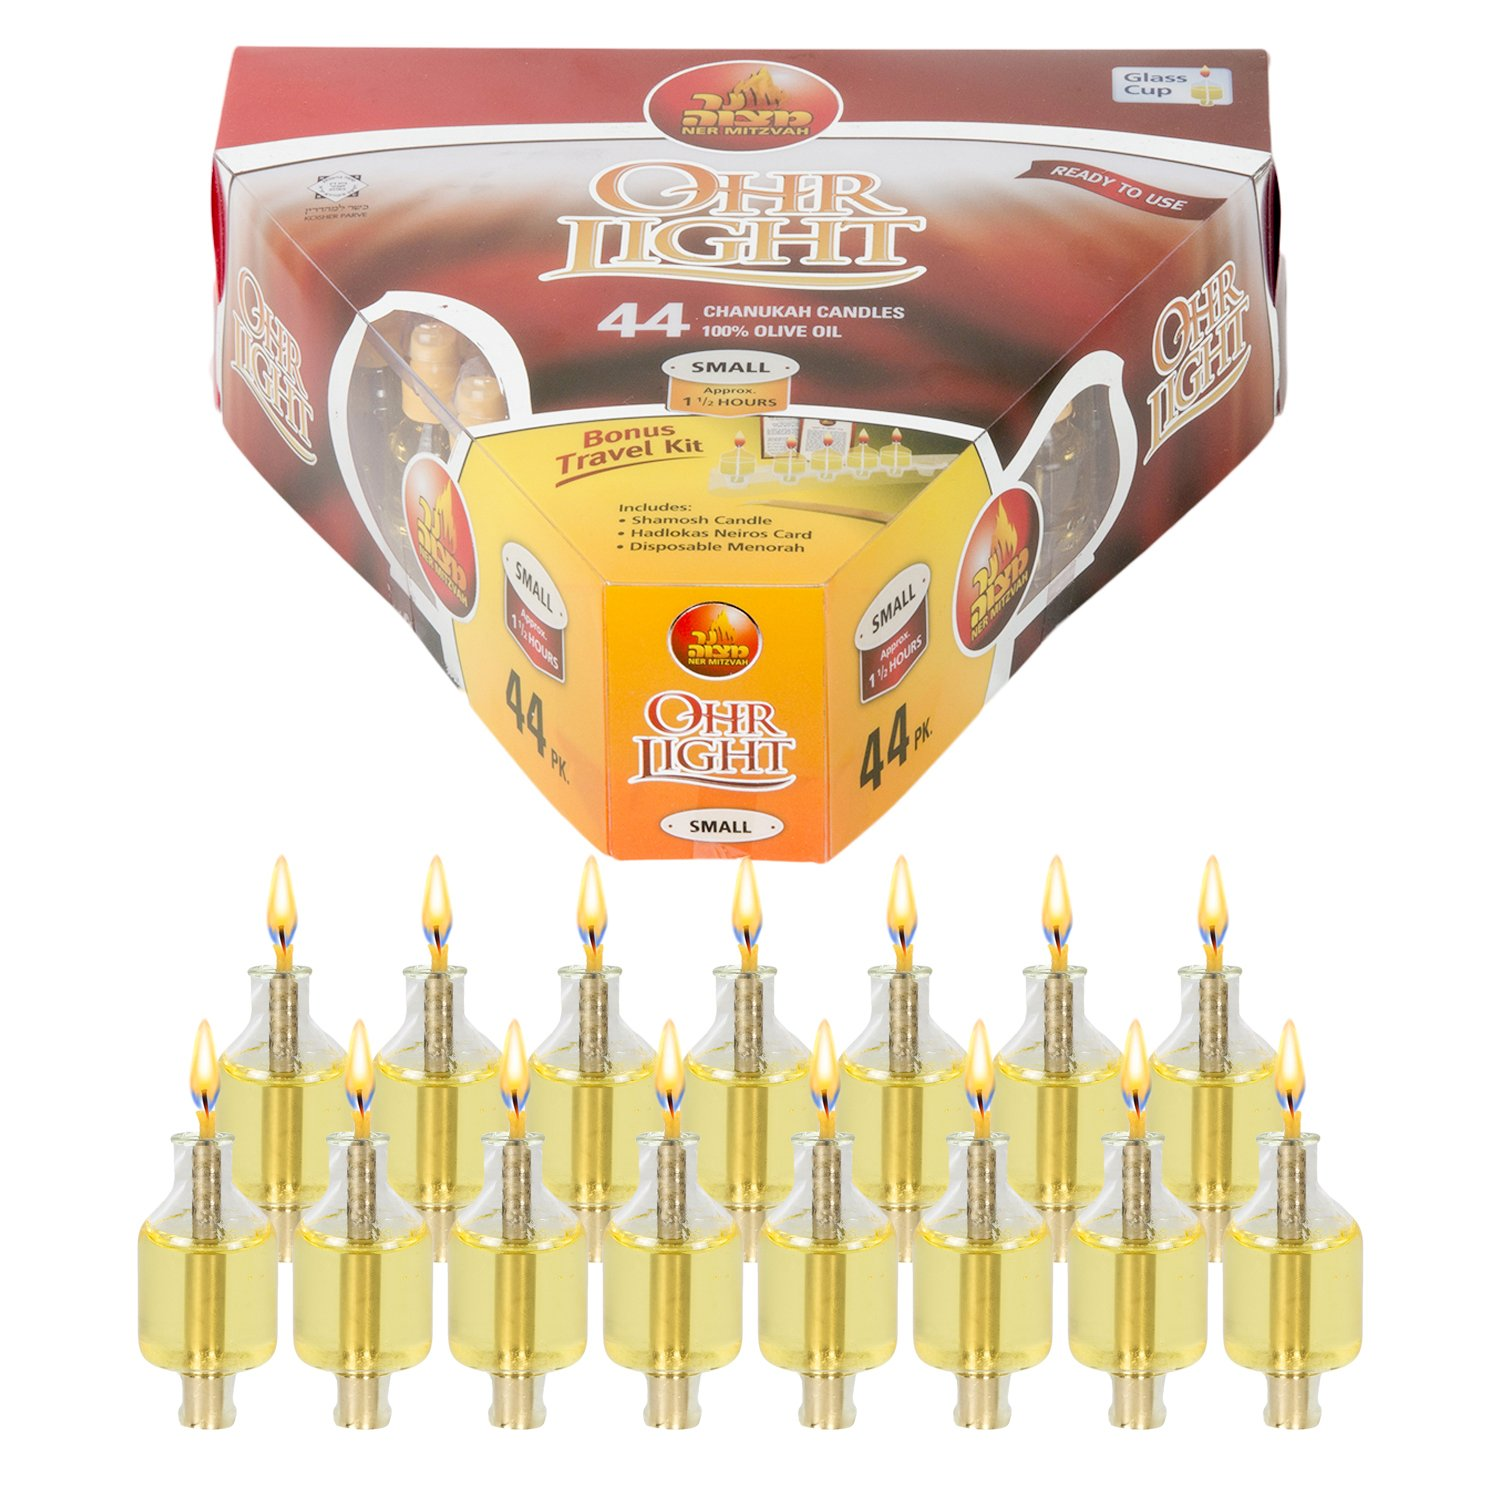 Ner Mitzvah Pre Filled Menorah Oil Cup Candles Lighting Diagram Hanukkah Ohr Lights 100 Olive With Cotton Wick In Glass Small Size 44 Per Pack